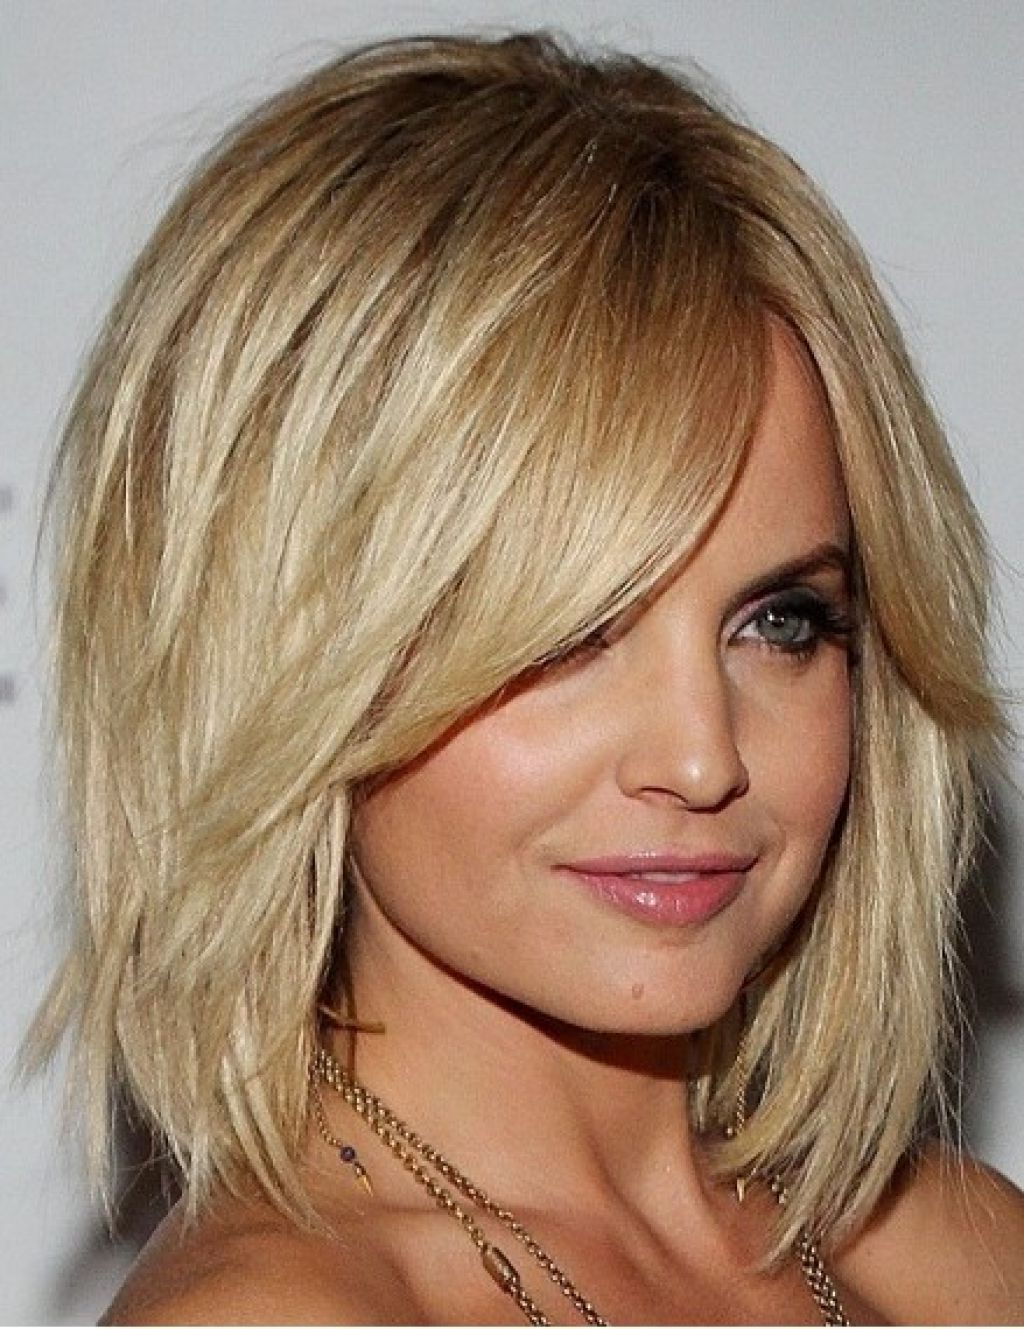 Short Hairstyles With Side Bangs And Layers – Hairstyle For Women & Man Inside Rounded Bob Hairstyles With Side Bangs (View 17 of 20)